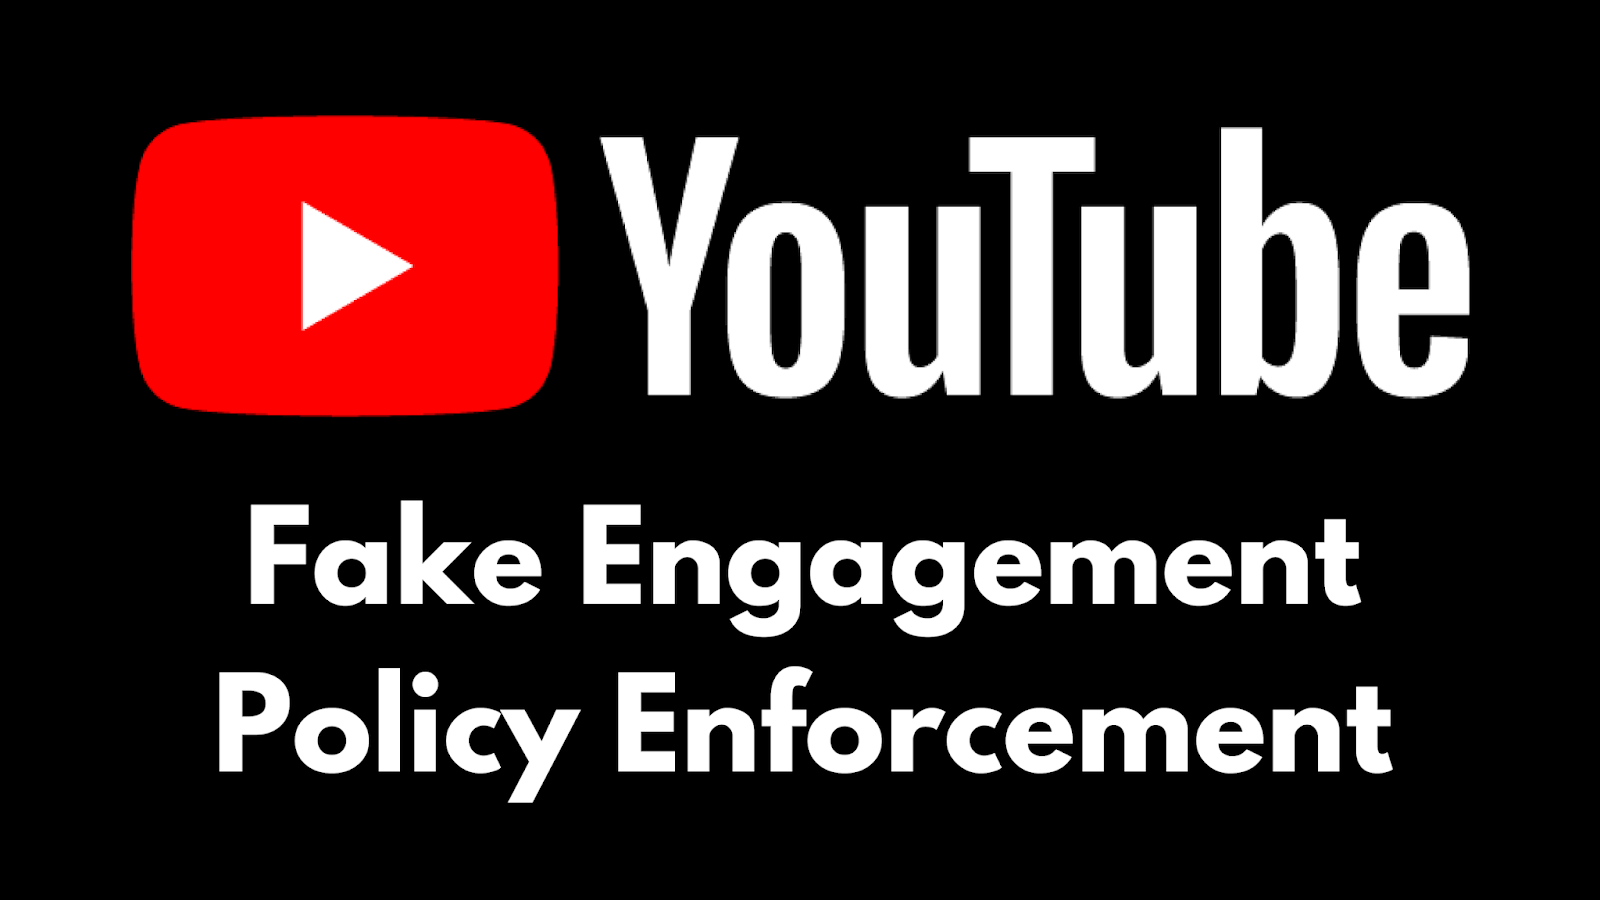 YouTube increases enforcement of